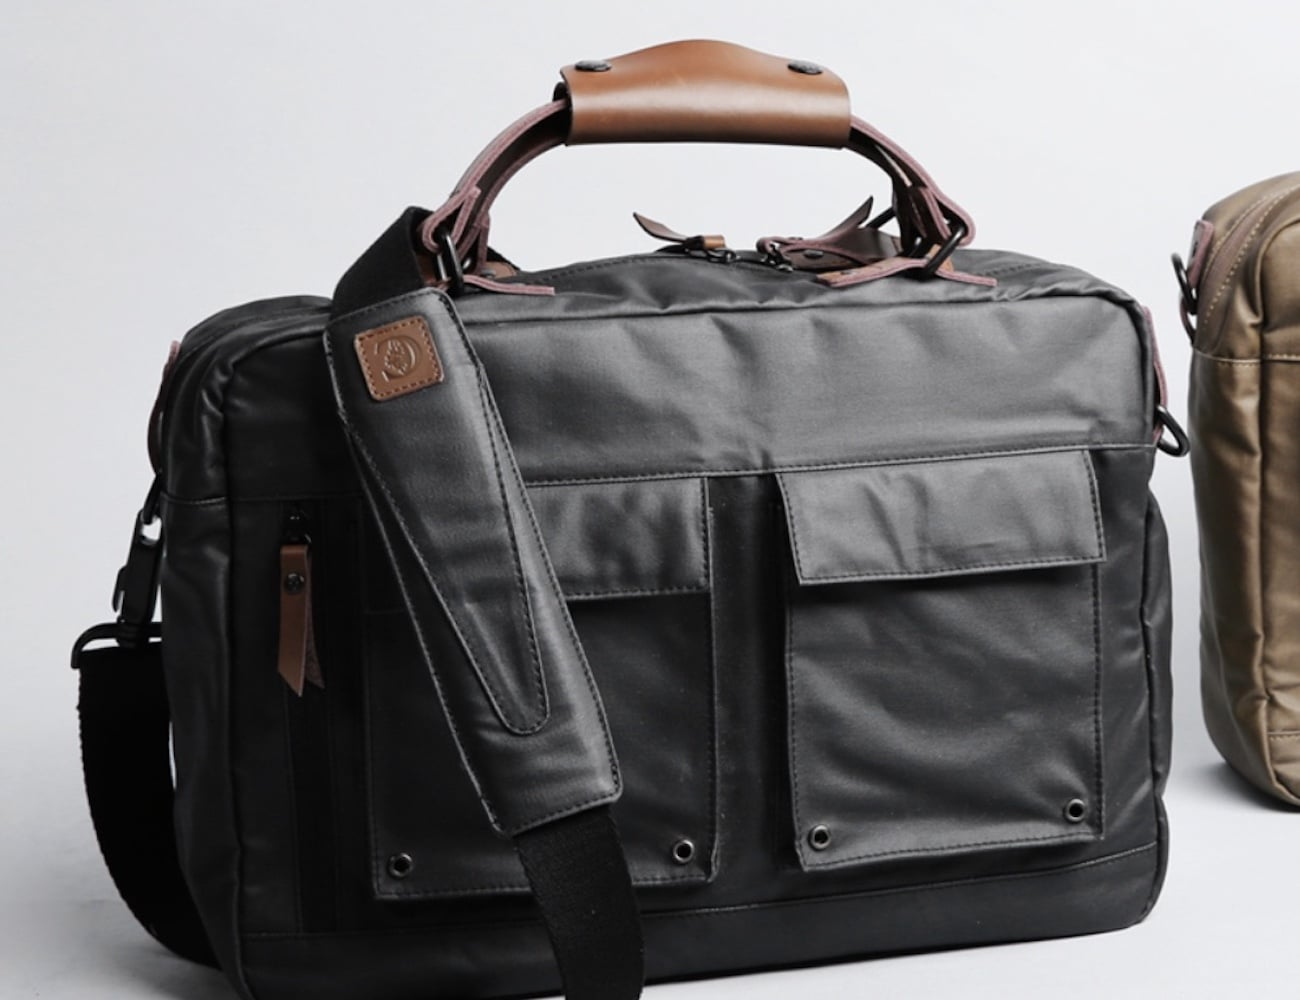 Everyday MacBook Messenger Bag